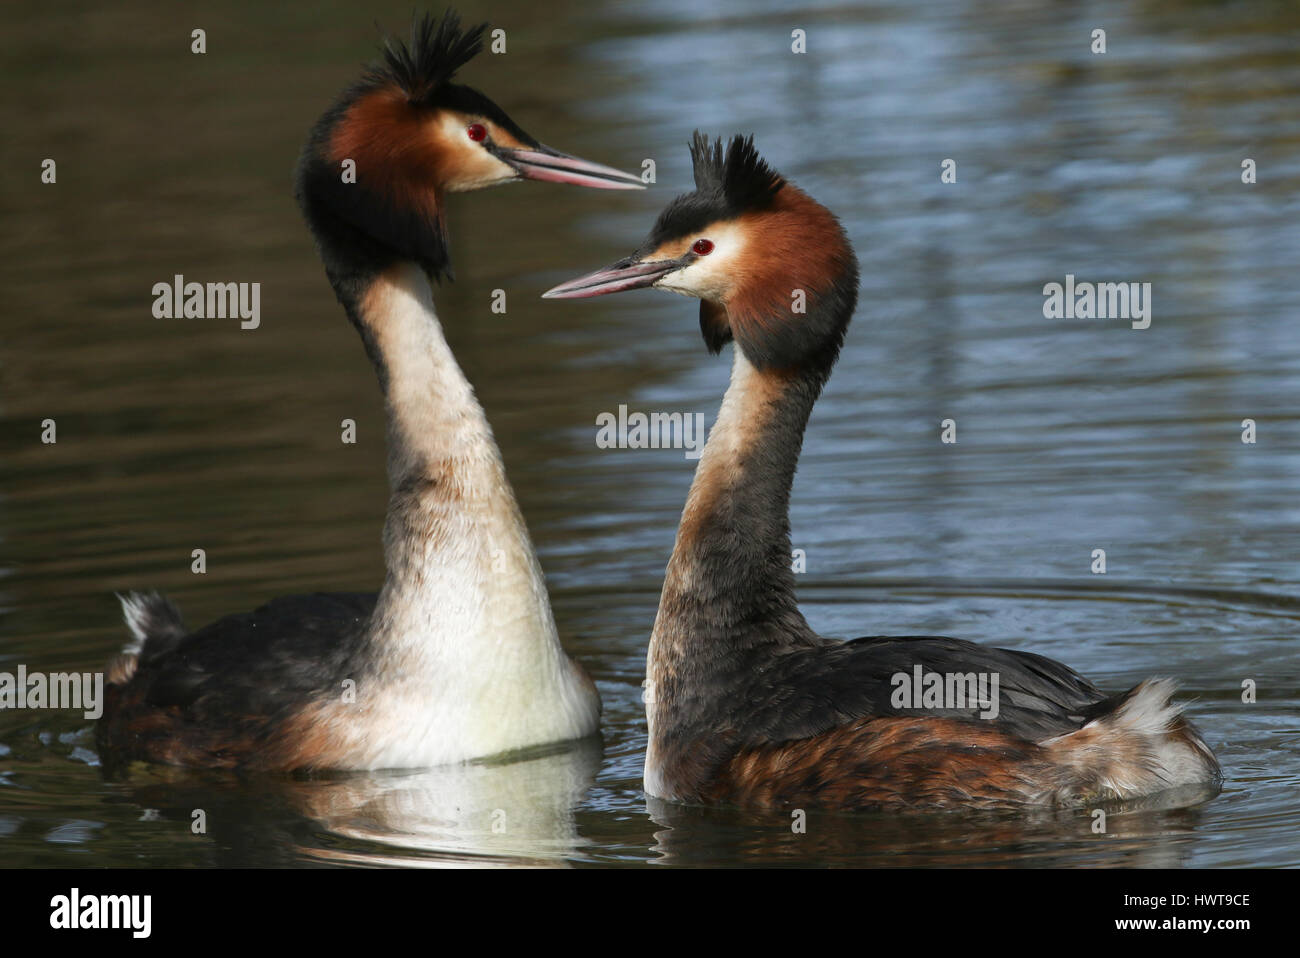 A pair of beautiful Great crested Grebe (Podiceps cristatus) in the middle of their courtship display. - Stock Image